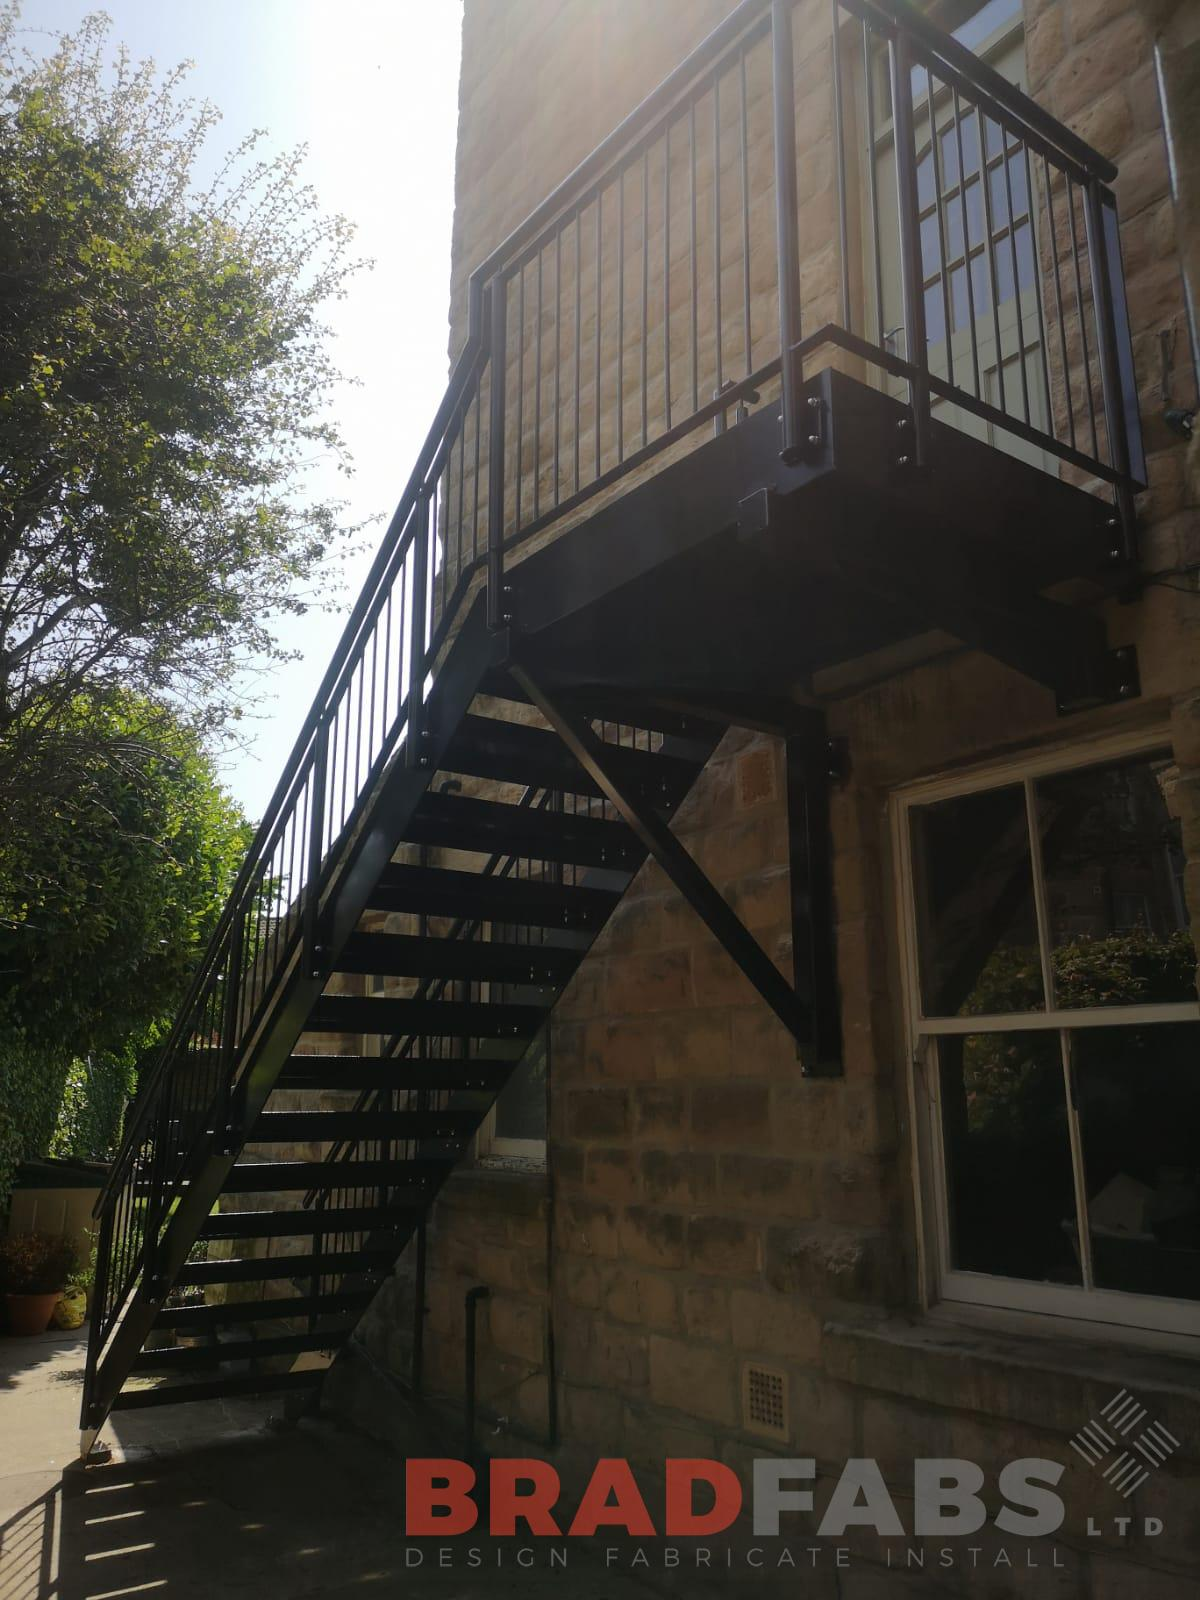 Mild steel, galvanised and powder coated fire escape with vertical bar balustrade and durbar treads by Bradfabs